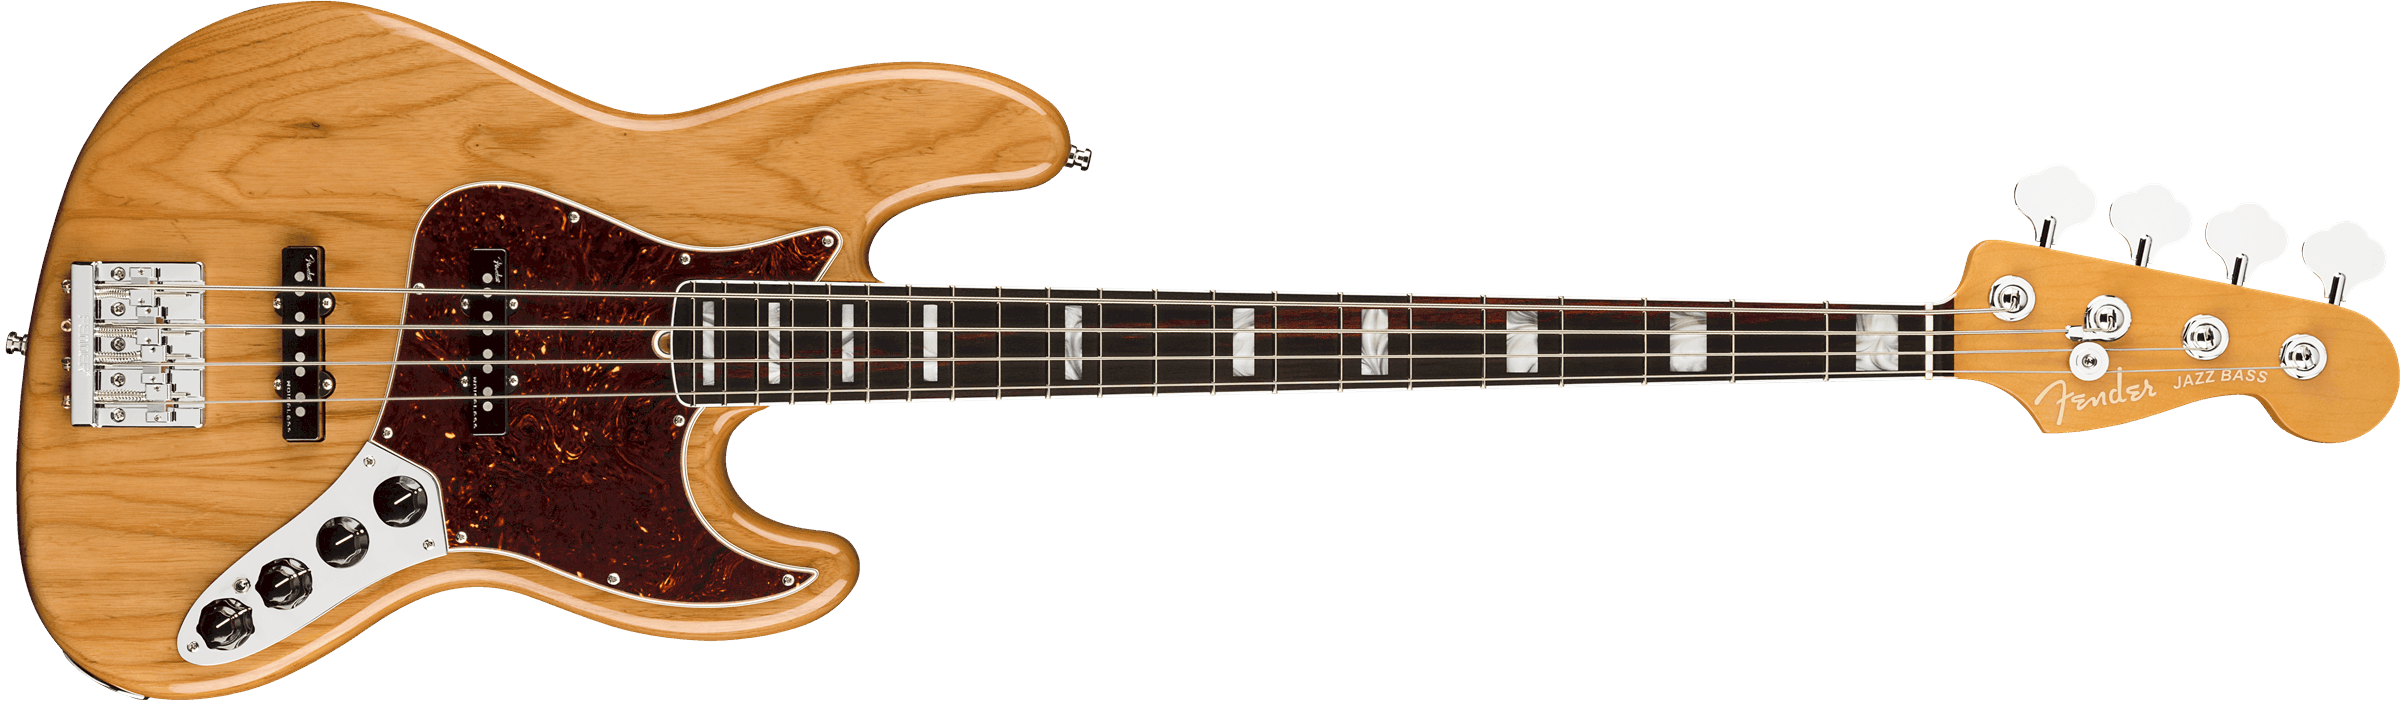 Fender American Ultra Jazz Bass®, Rosewood Fingerboard, Aged Natural